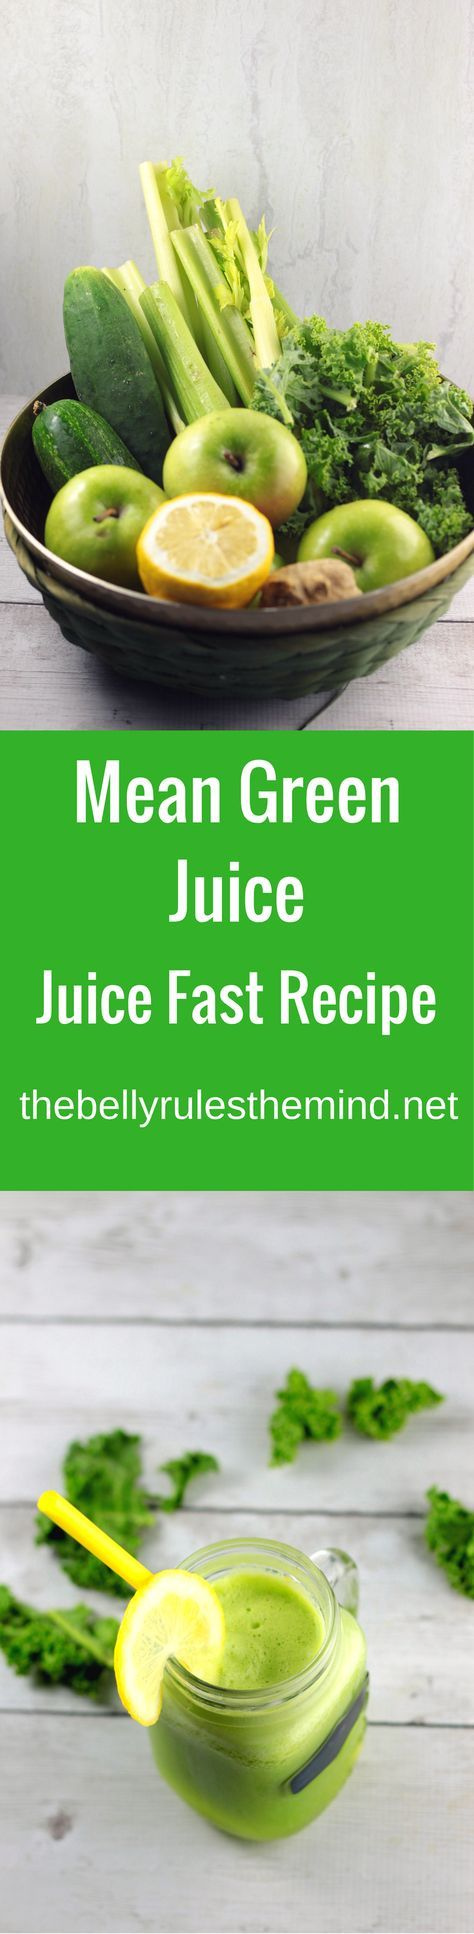 The world's most famous Green juice recipe. Joe Cross's Mean Green will even leave kids begging for more. 6 healthy ingredients, 5 minutes and a juicer is all you need to clean, detox and reboot |www.thebellyrulesthemind.net